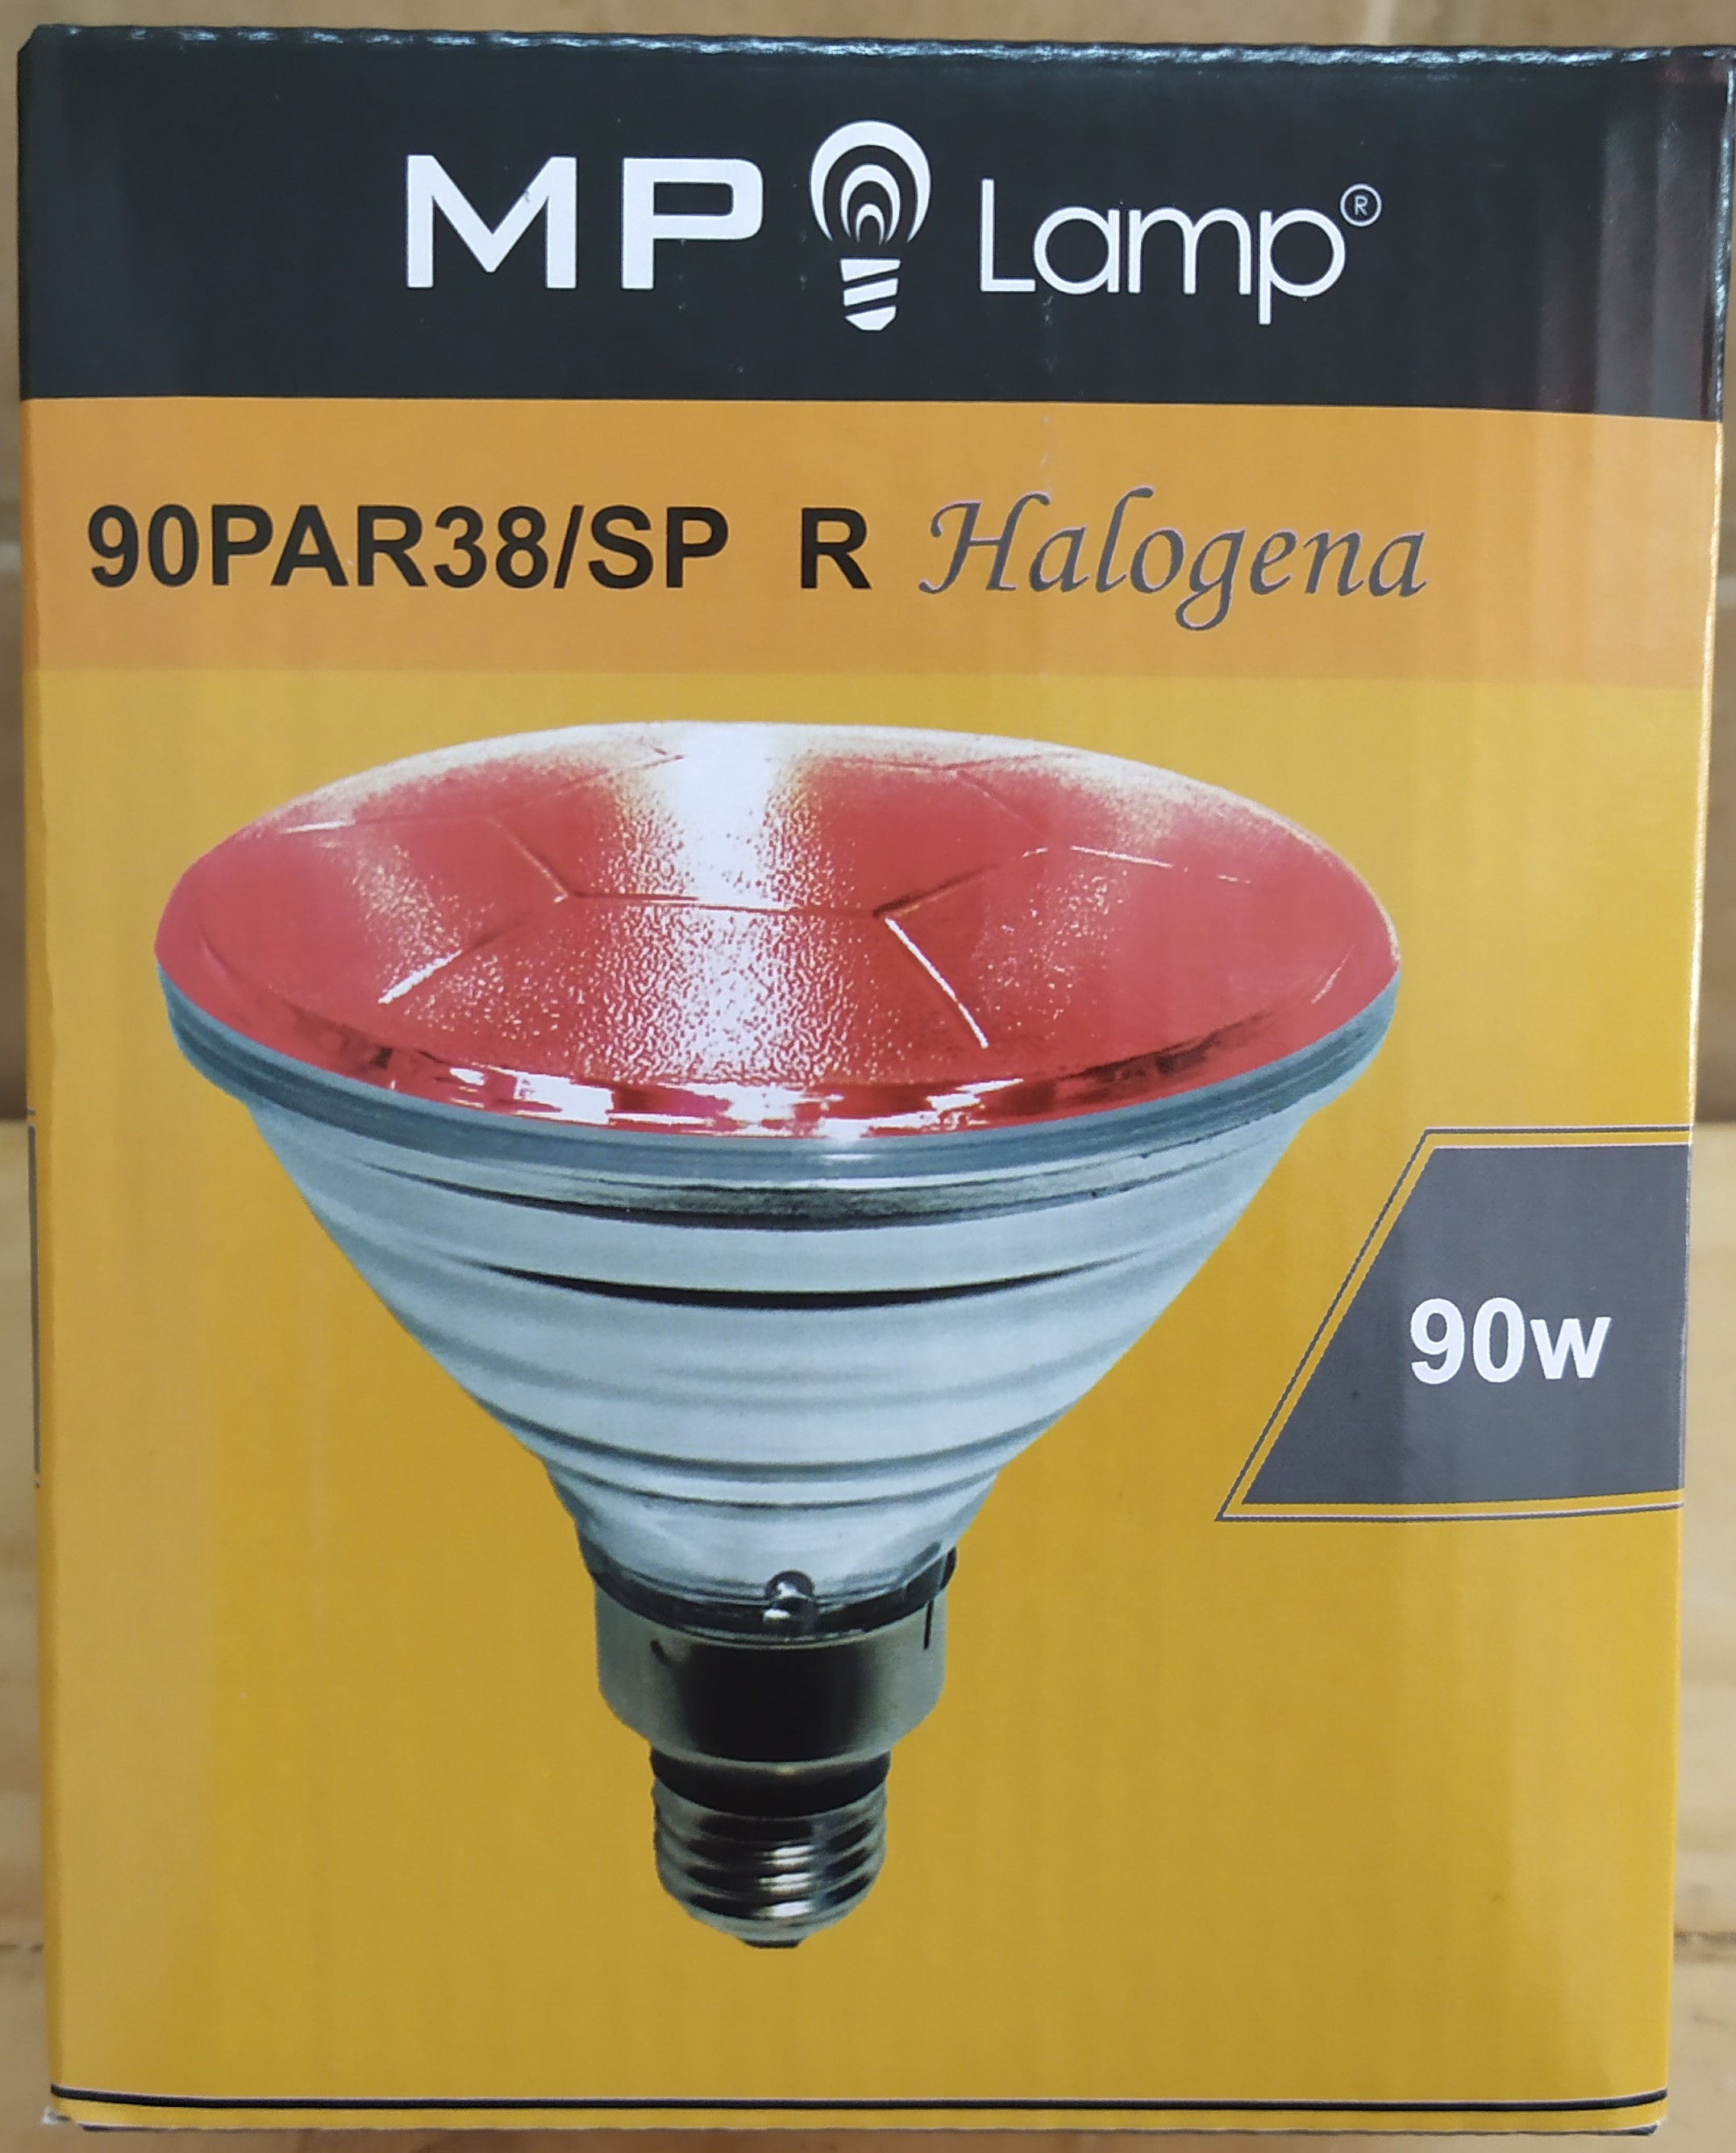 E16 LAMPARA HALOGENA 90PAR38/SP ROJA 90W ROSCA E27 MP